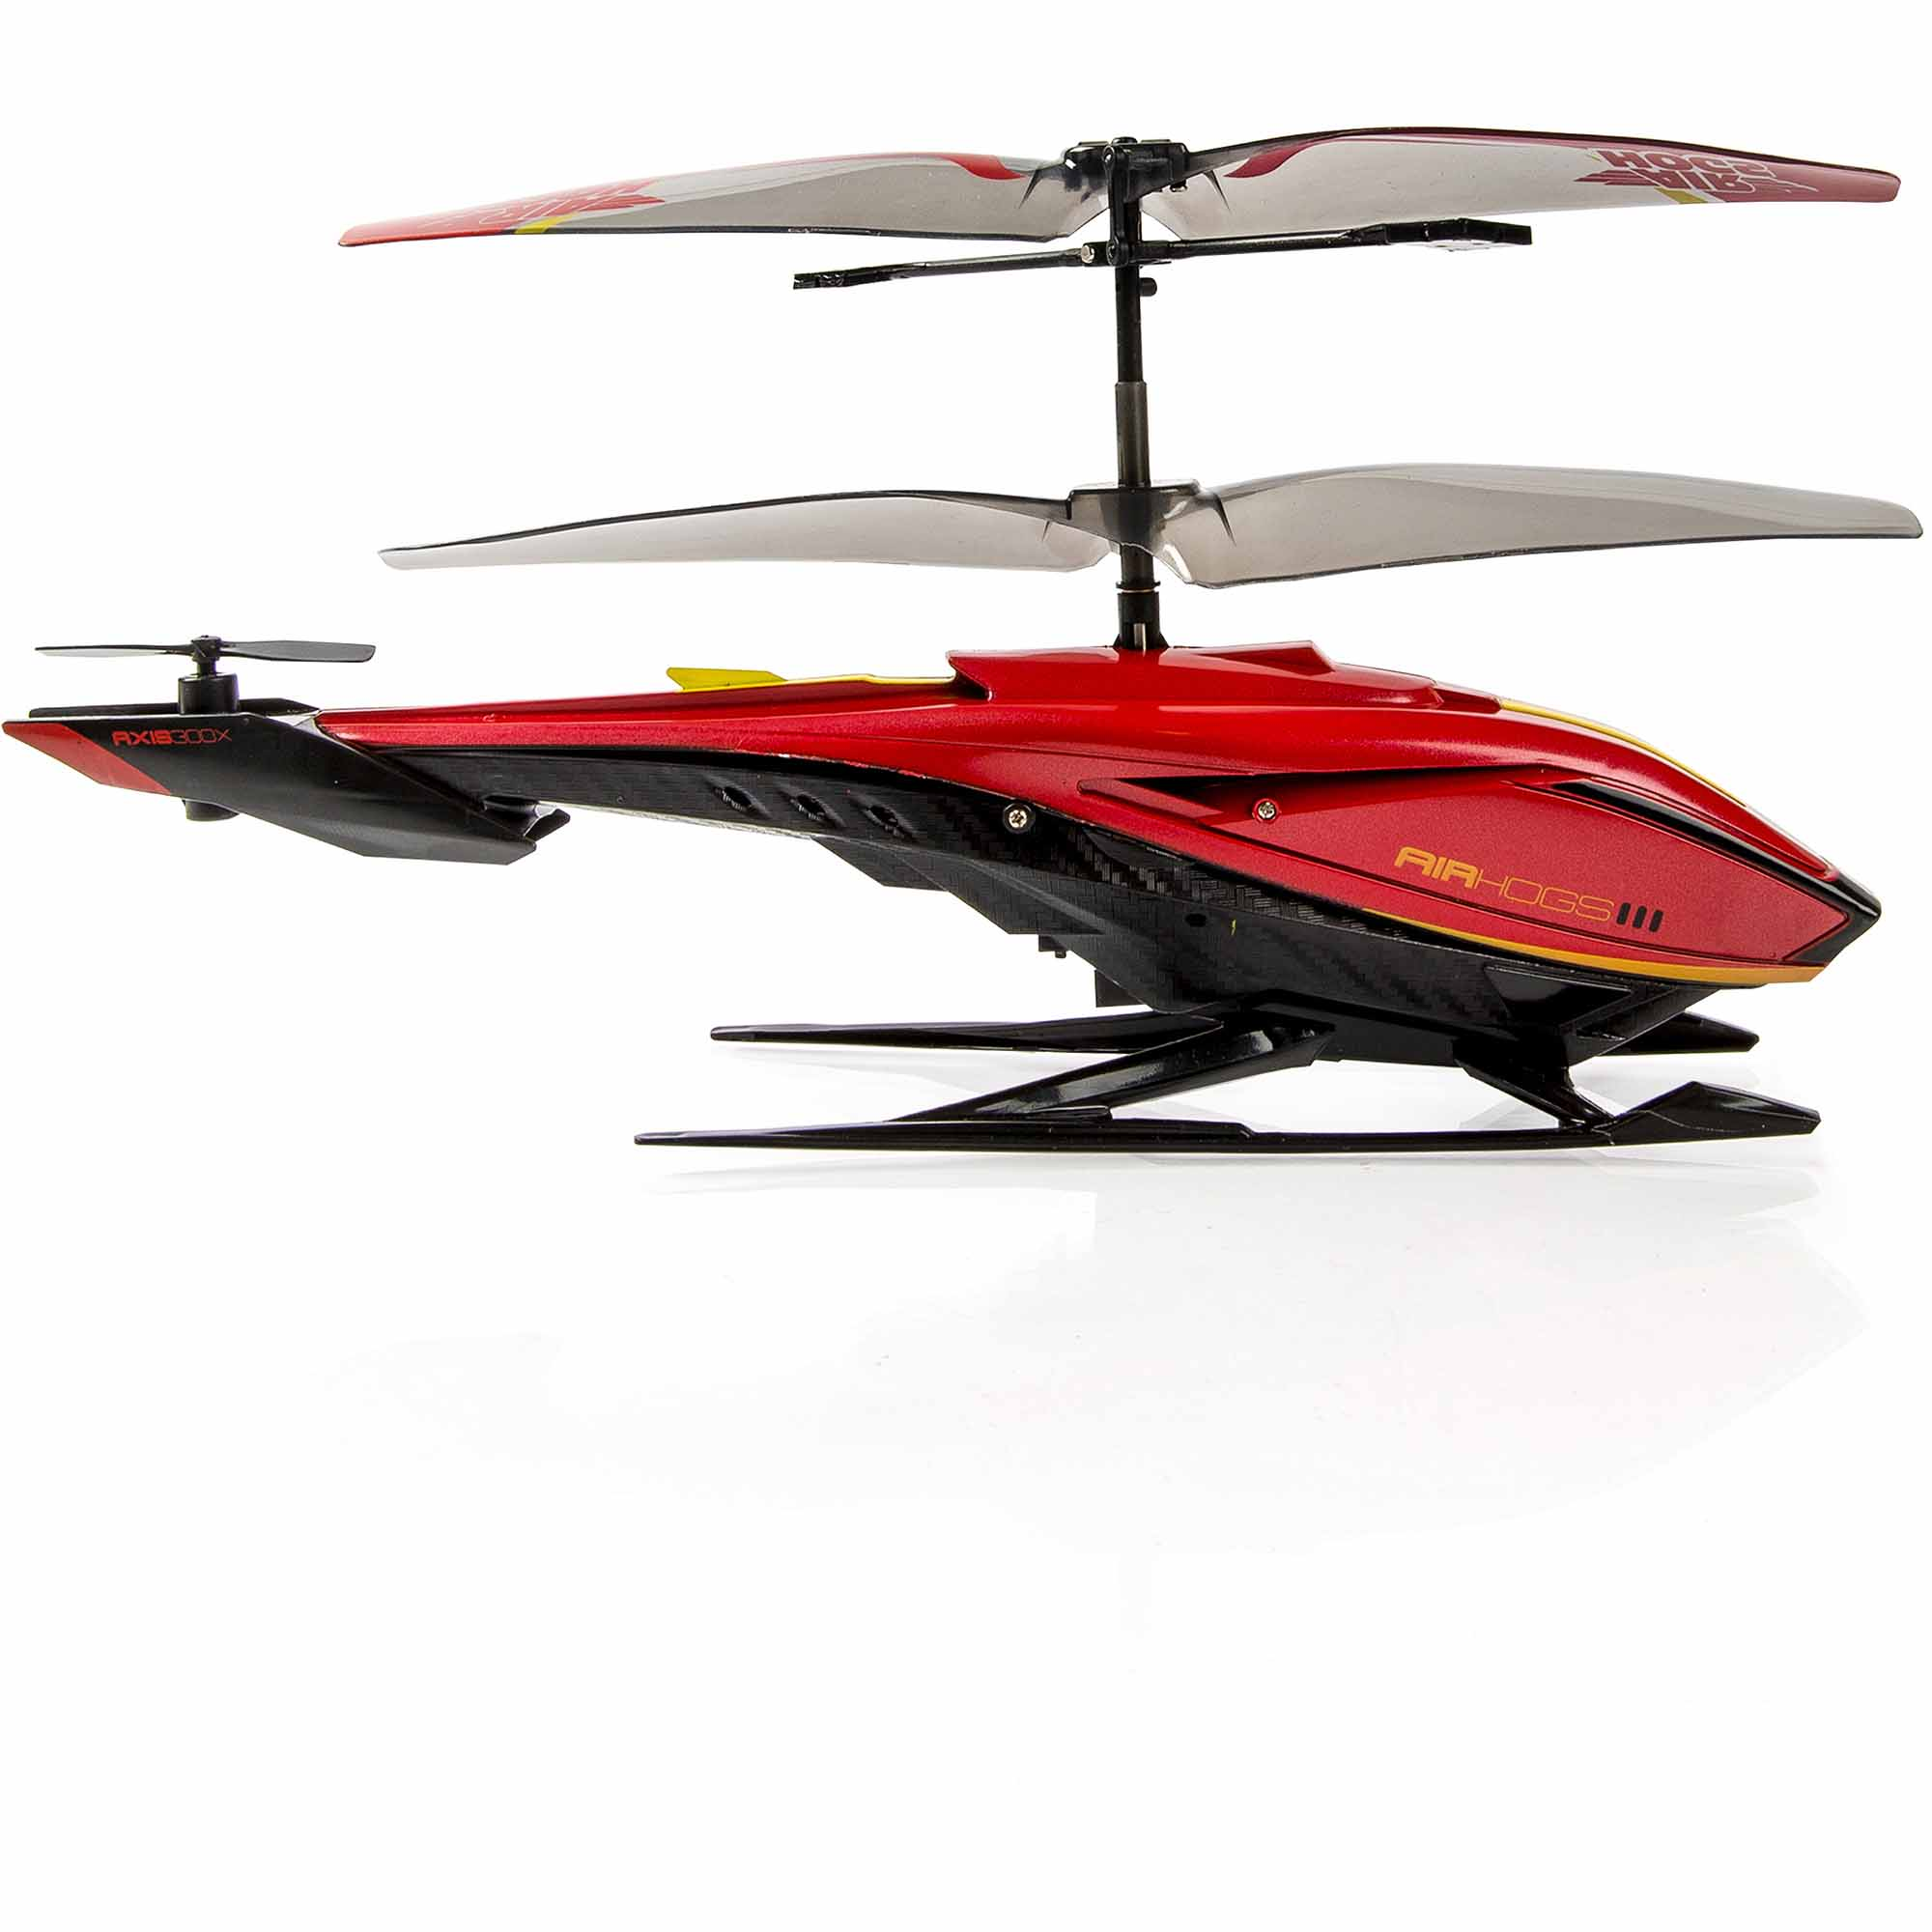 Air Hogs RC Axis 300X R C Helicopter Red & Silver Walmart